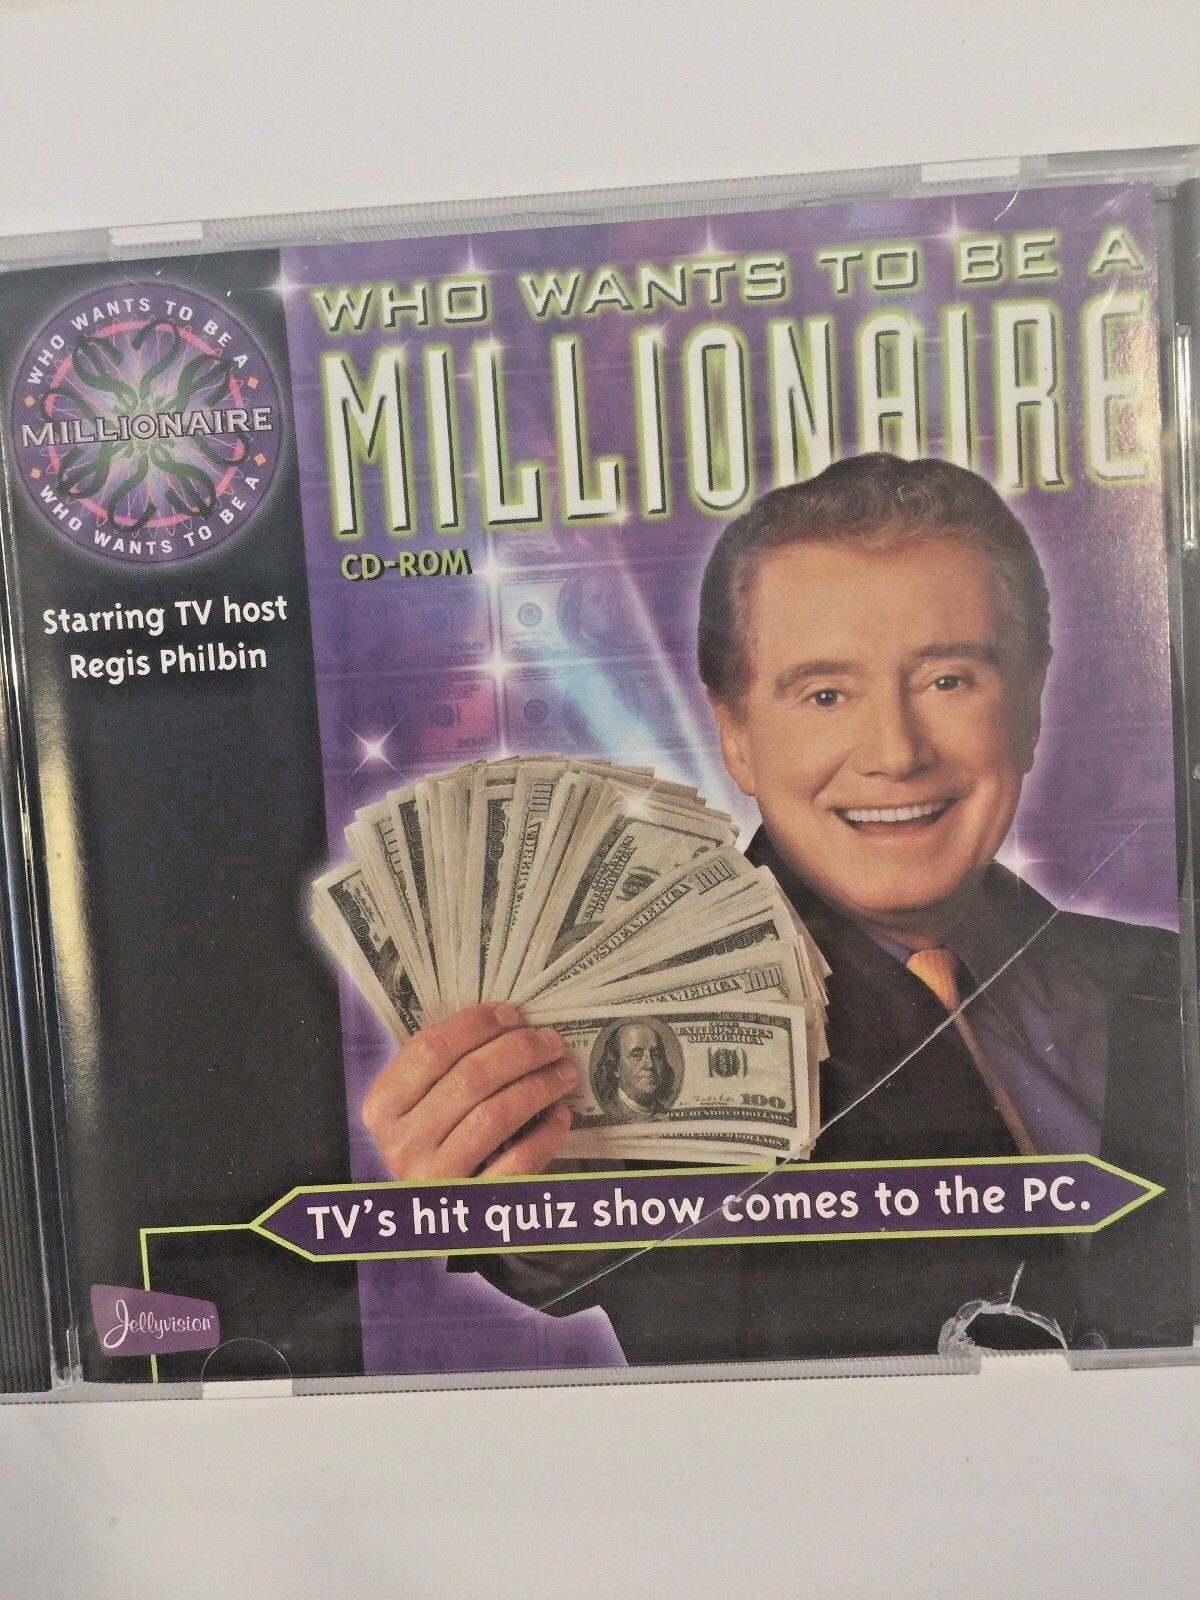 NEW original WHO WANTS TO BE MILLIONAIRE CD ROM game